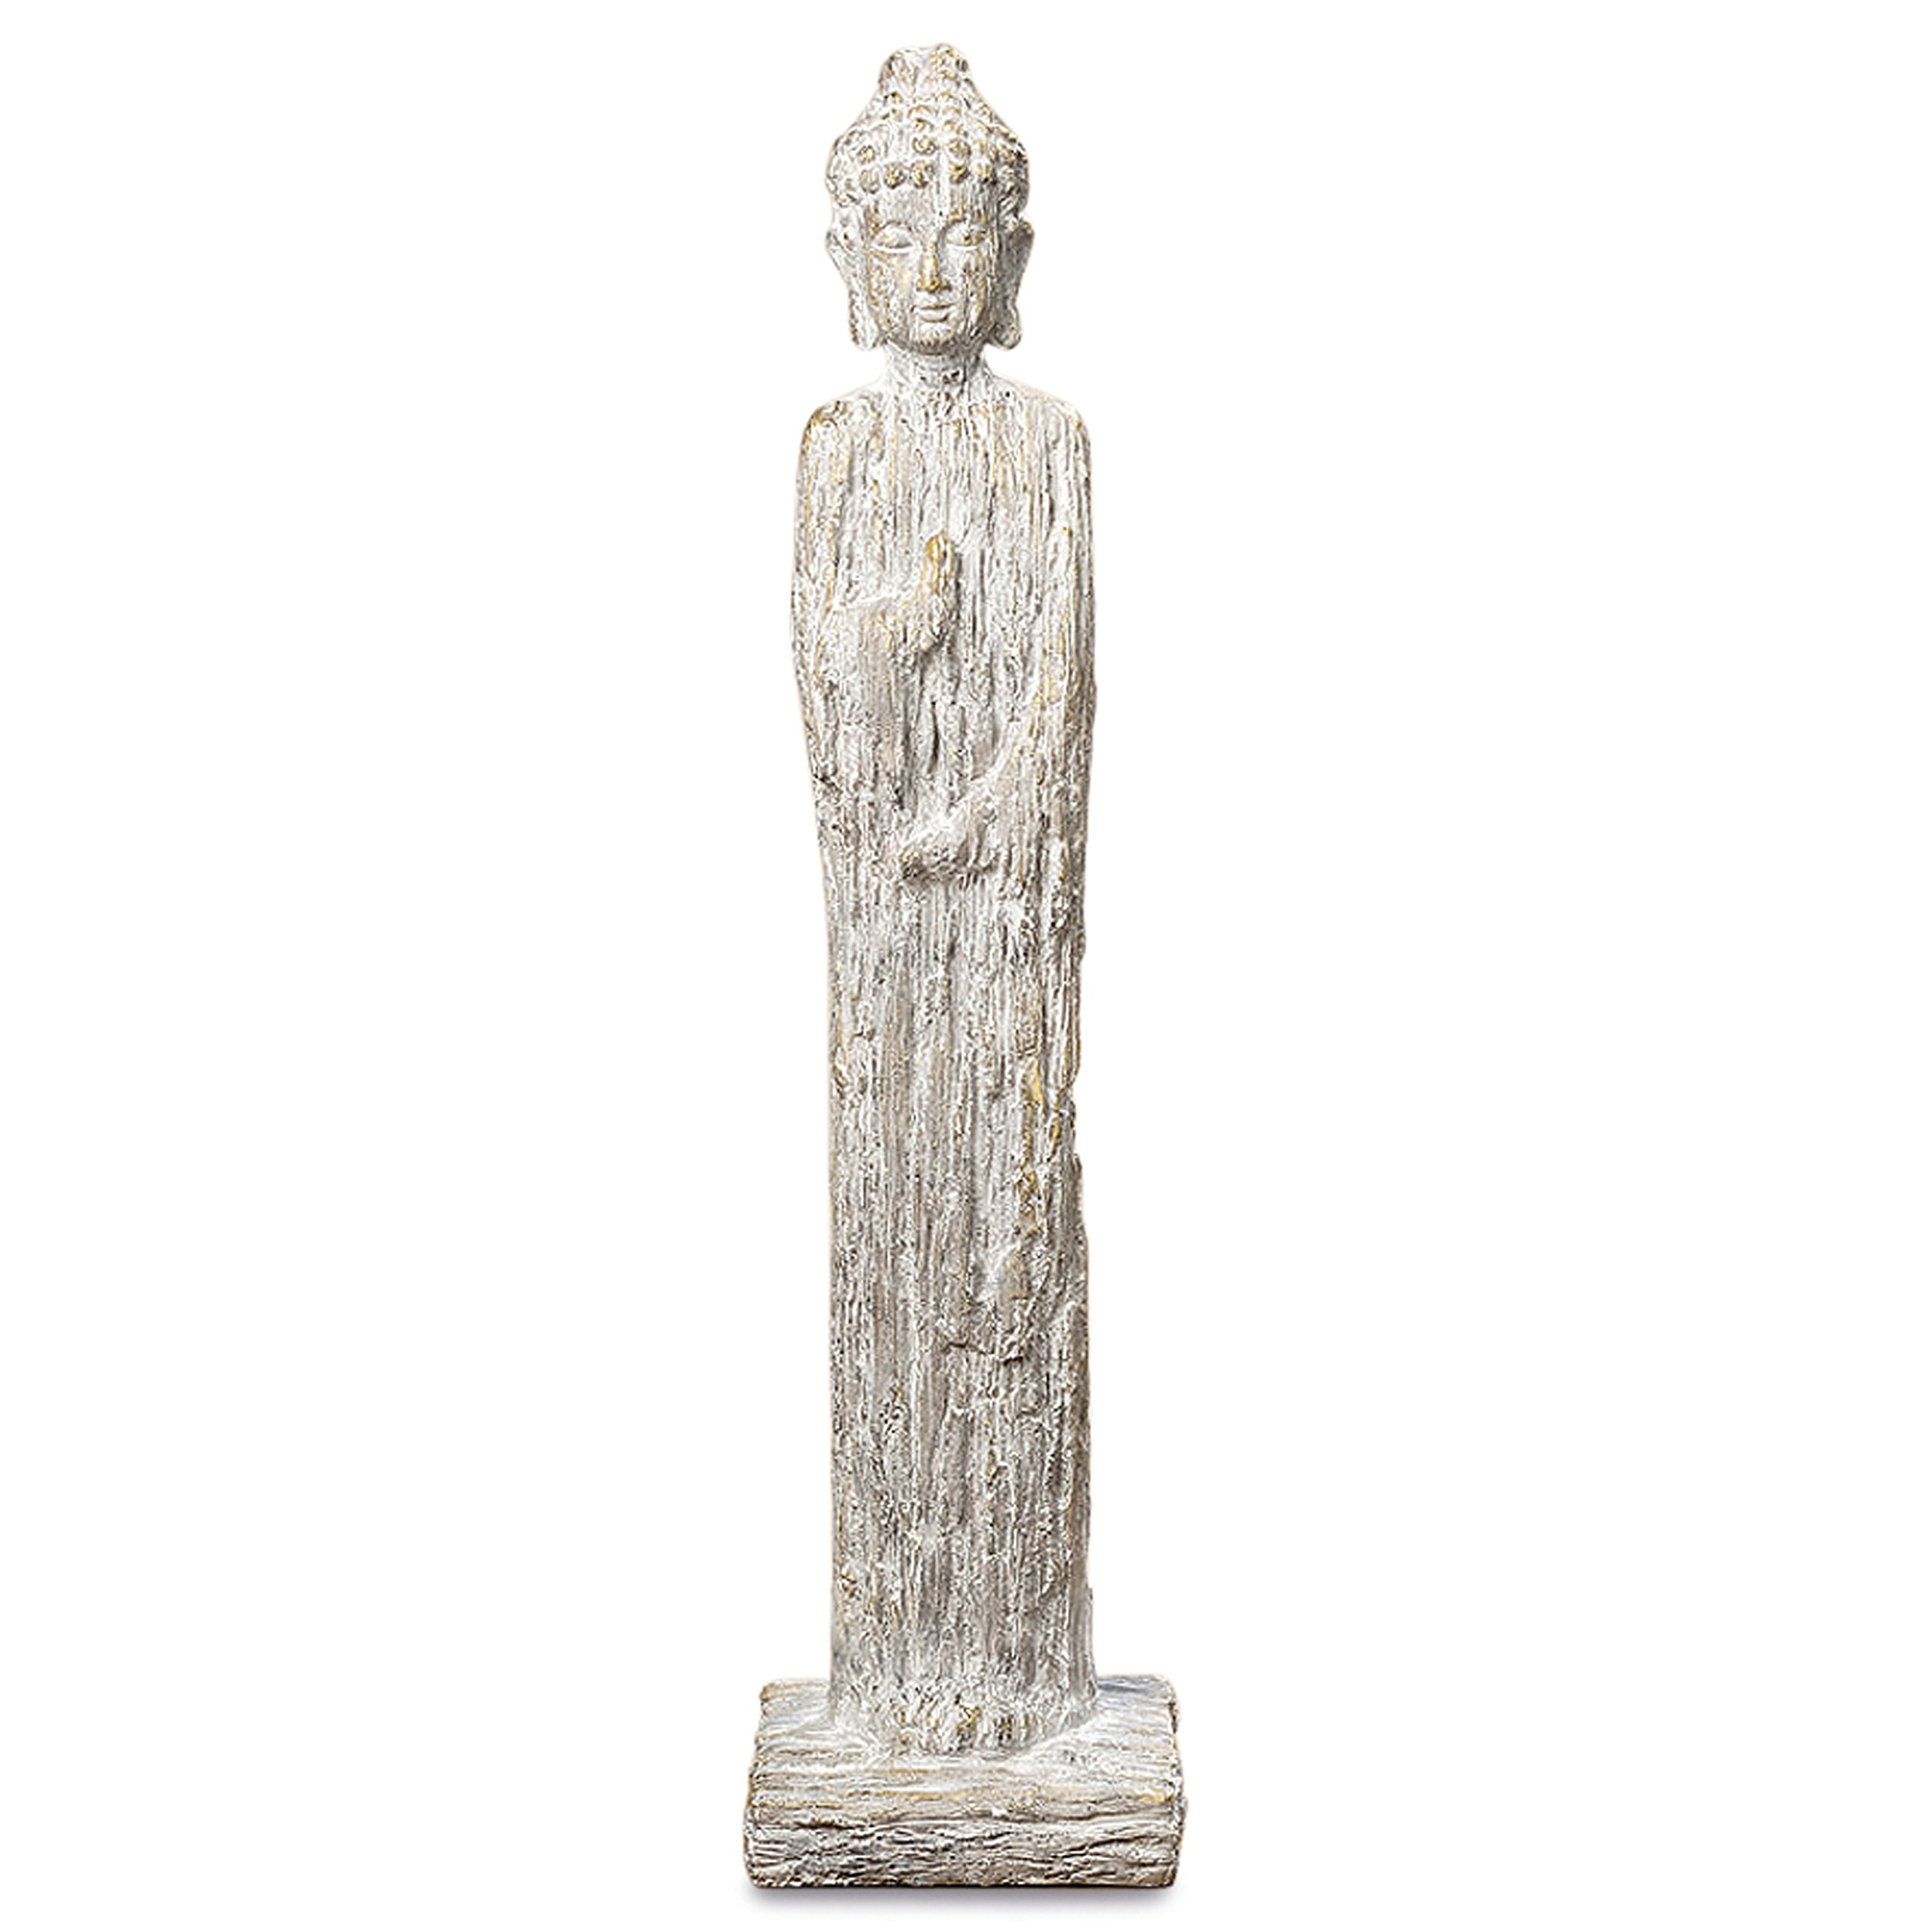 Whole House Worlds Urban Zen Buddha Statue, for Meditation Zones, Spas,or Gardens, Rustic Gray, Artisan Cast Magnesia, Shabby Distressed Tonal Gilt Patina, 32 1/4 Inches Tall,by WHW